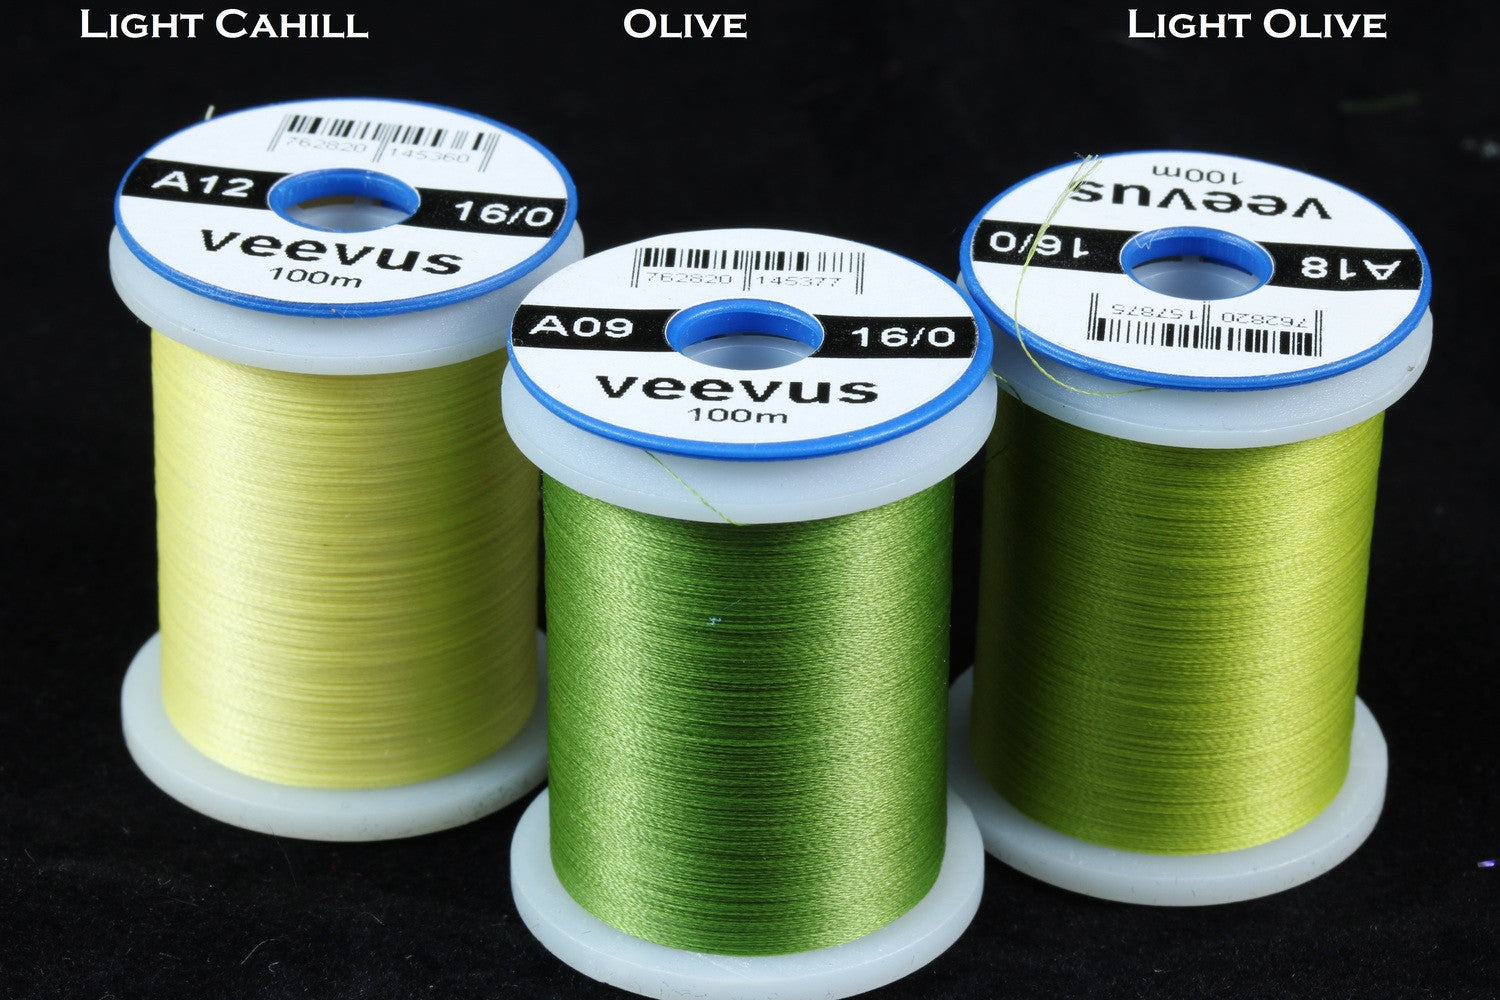 Veevus 16/0 thread - The TroutFitter Fly Shop